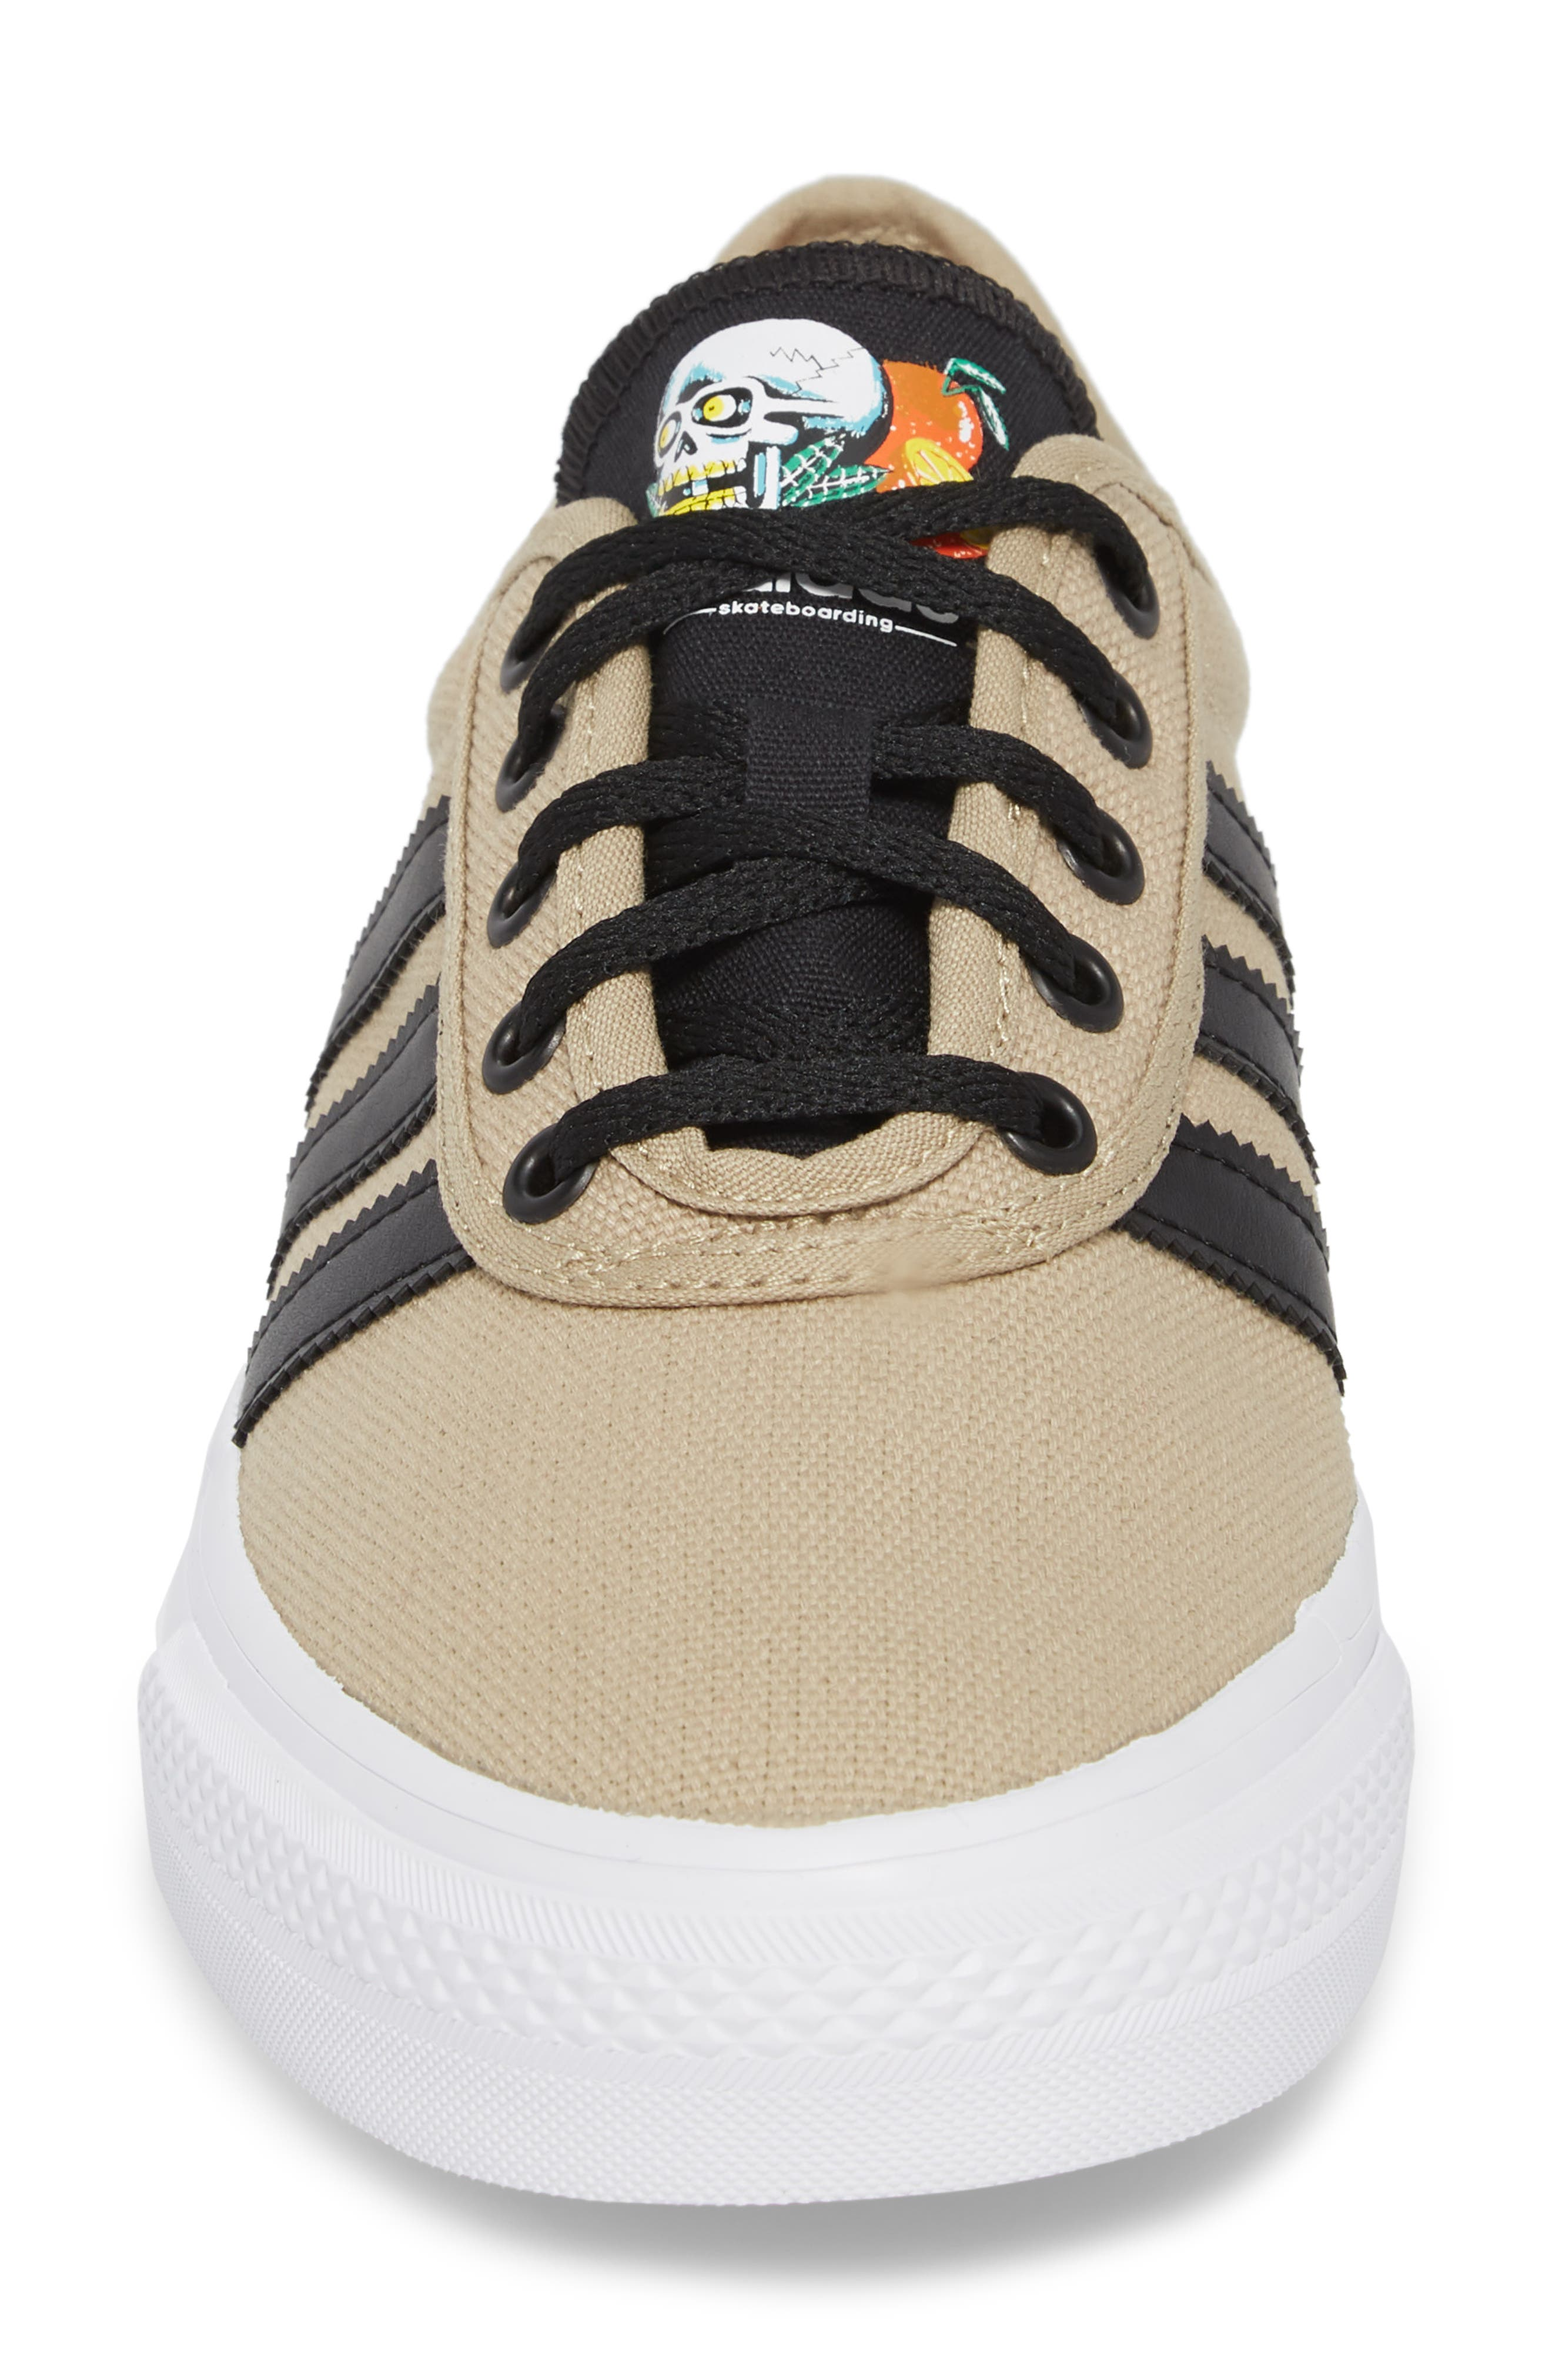 Adiease Premiere Skateboarding Sneaker,                             Alternate thumbnail 4, color,                             Gold/ Core Black/ White